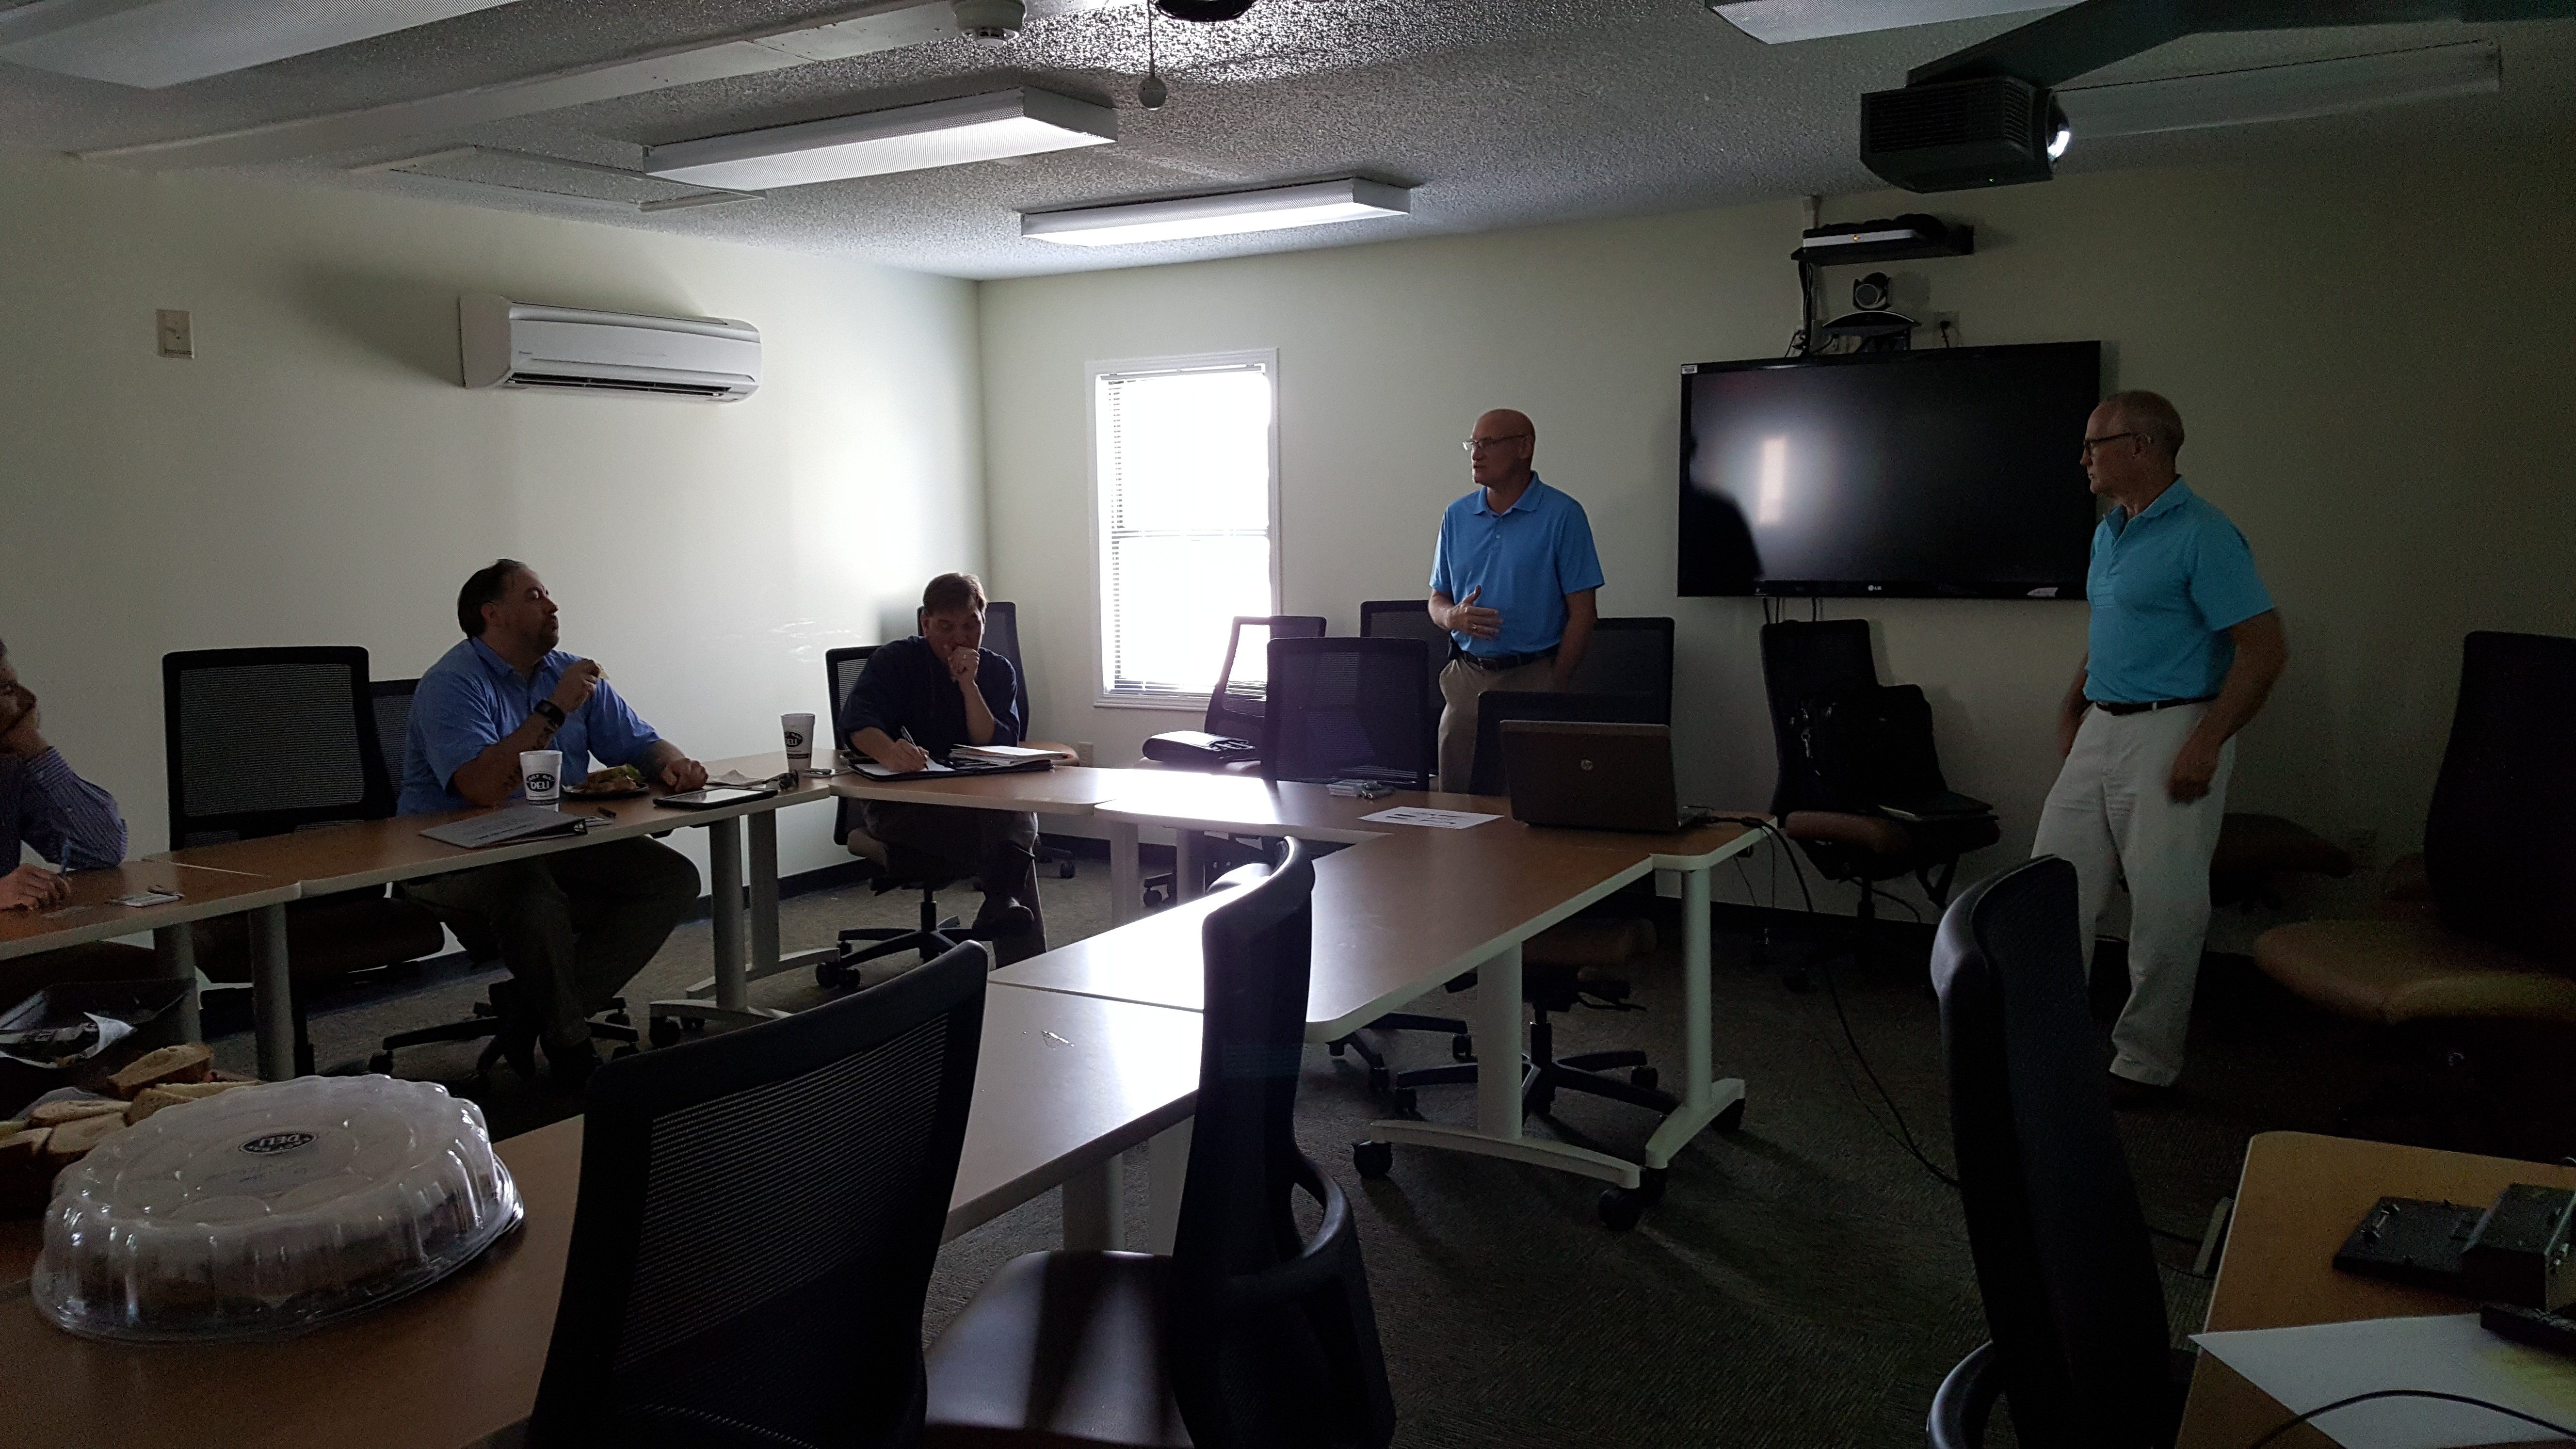 Charleston County School District Lunch and Learn with Transworld Inc Electrical Contractors on Electrical Preventative Maintenance TEGG Services